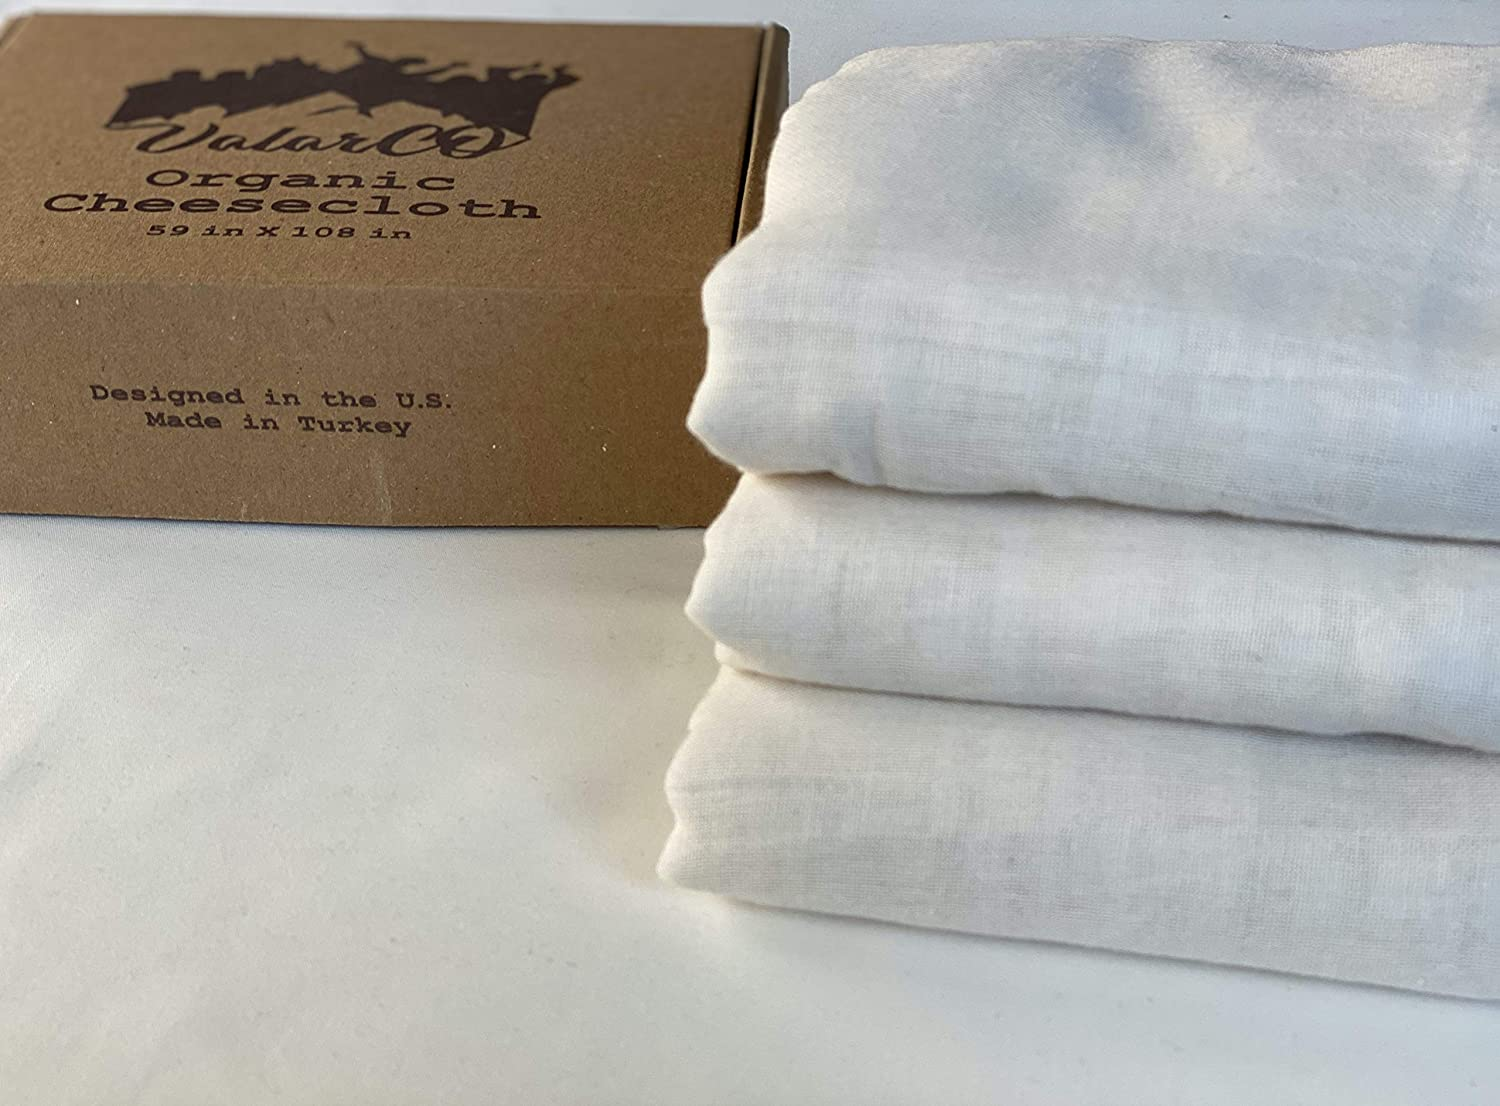 Organic Cheesecloth (59 in x 108 in), Multi Use, Food Grade for Straining Cheese, Nut Milk, Cold Brew, GOTS Certified, Unbleached, Reusable 100% Organic Cotton